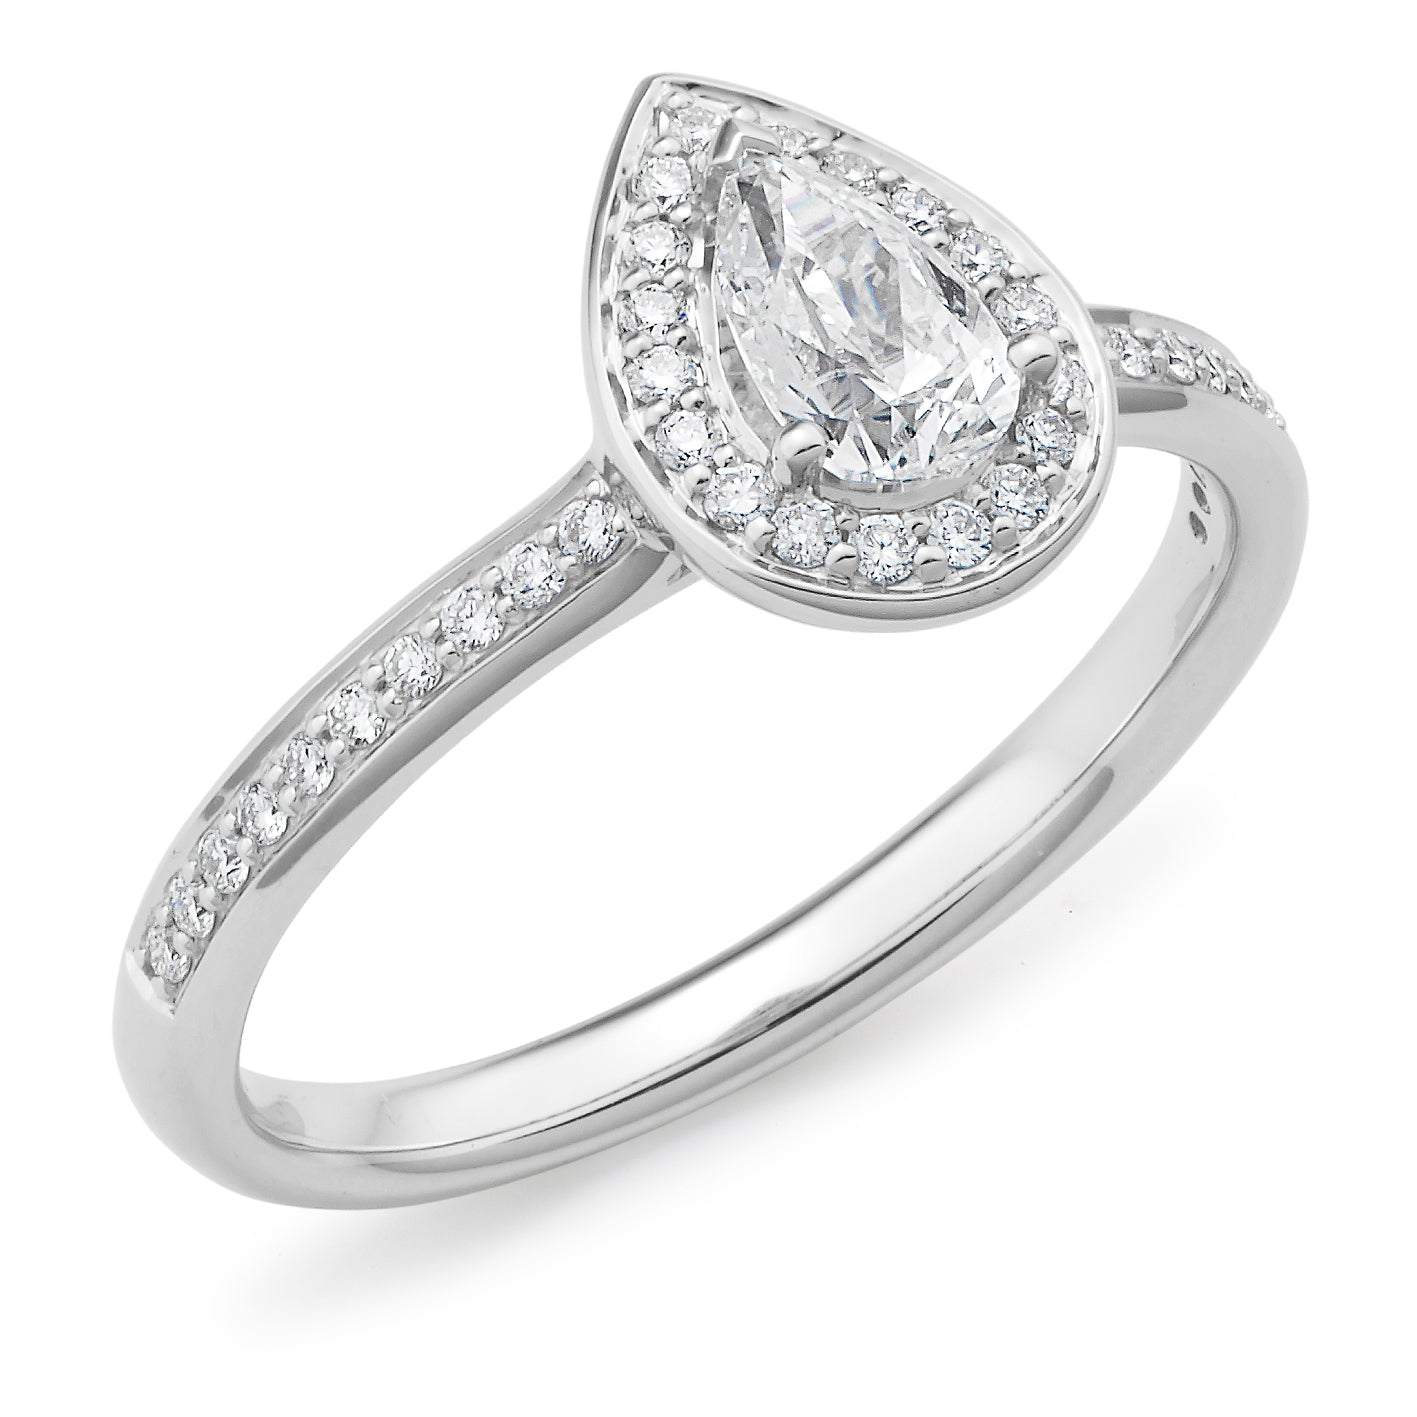 Diamond Claw/Bead Set Diamond Engagement Ring